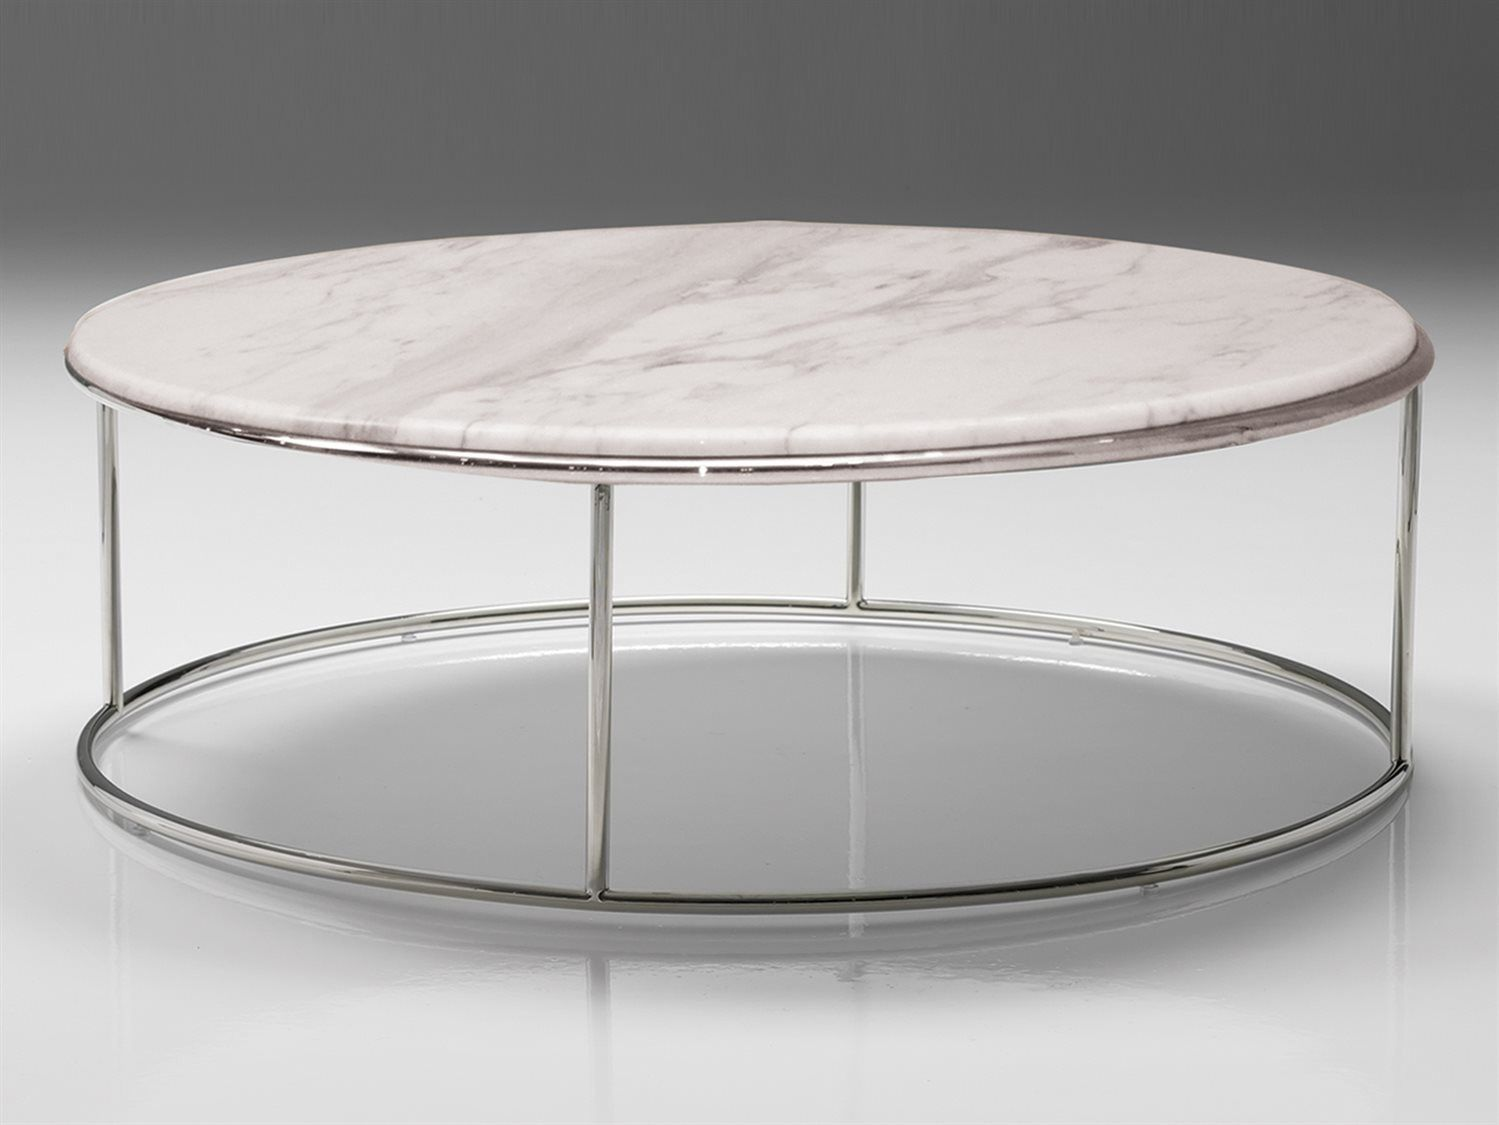 100 Silver Round Coffee Table Cool Modern Furniture Check more at